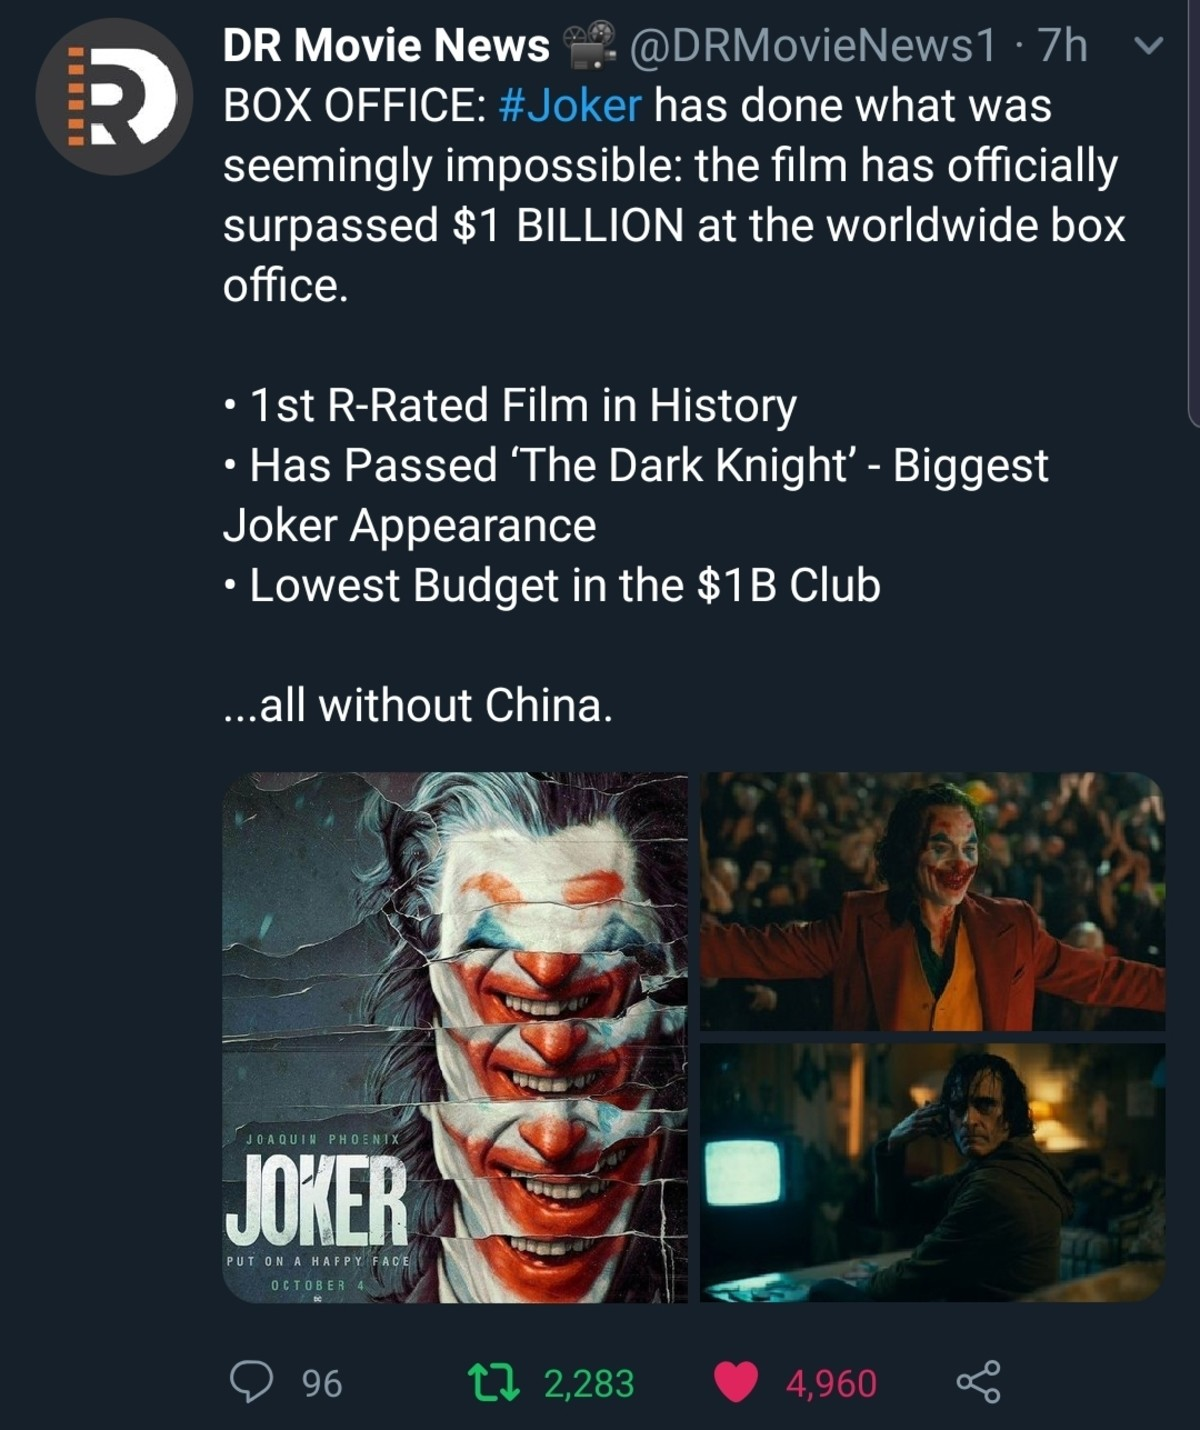 Biggest Joker of all time. .. Holy , Joker was the first R-rated film in history?